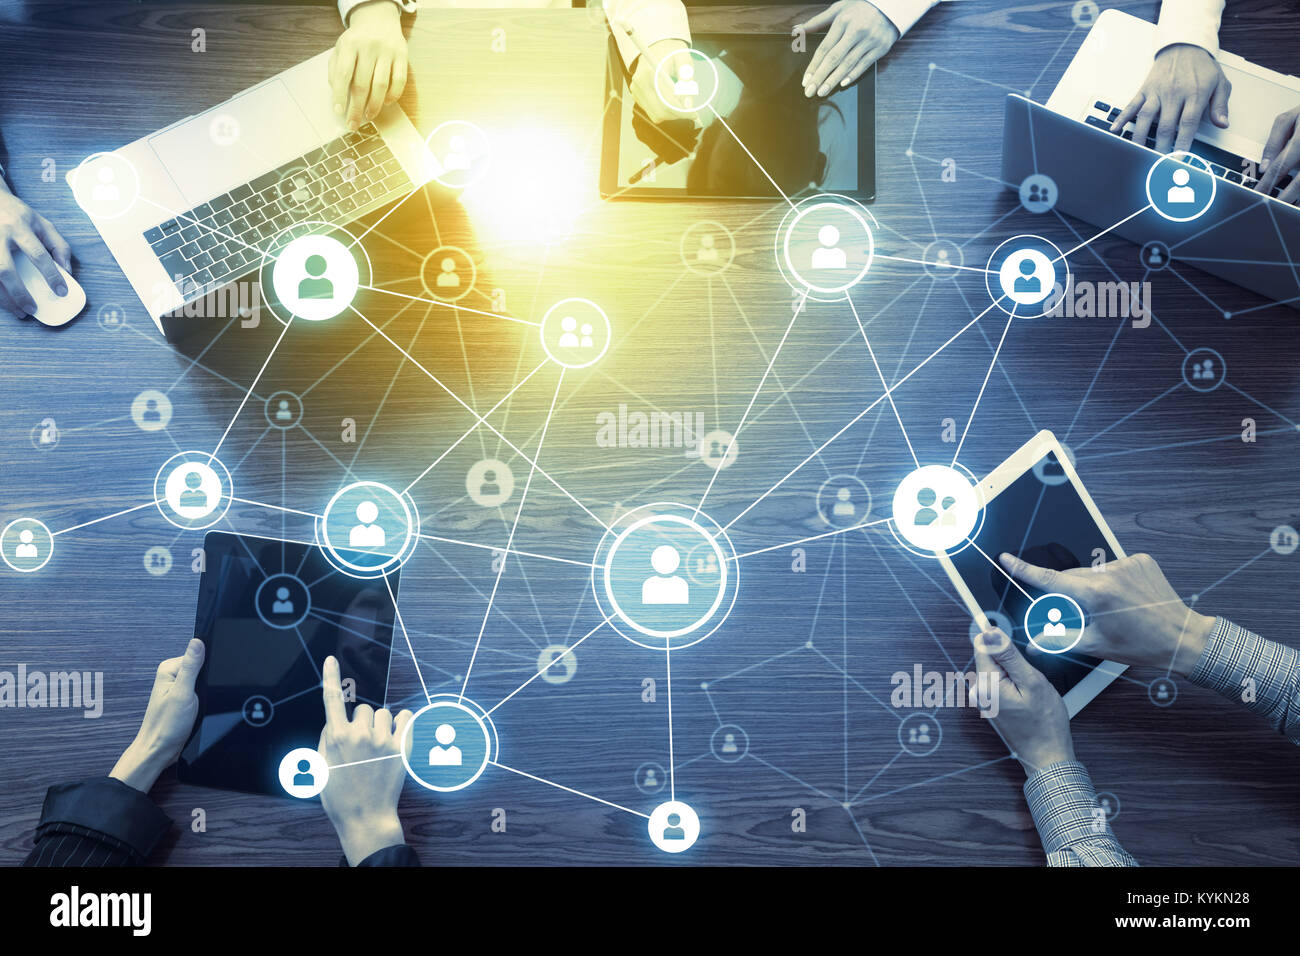 Social networking concept. - Stock Image